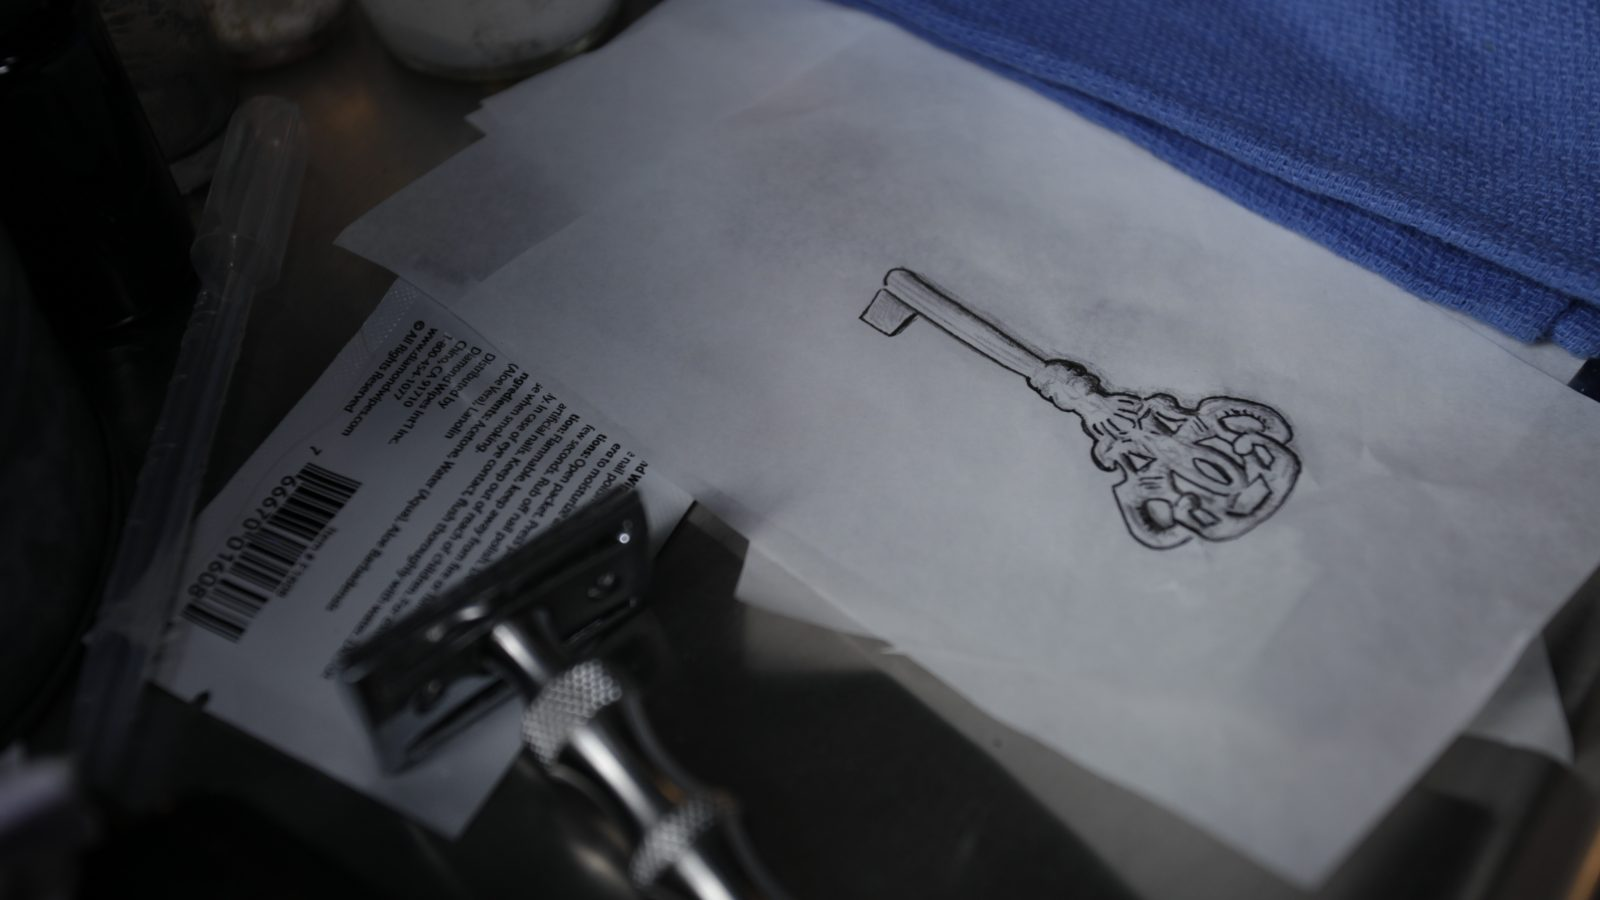 Sketching of a key on a piece of paper